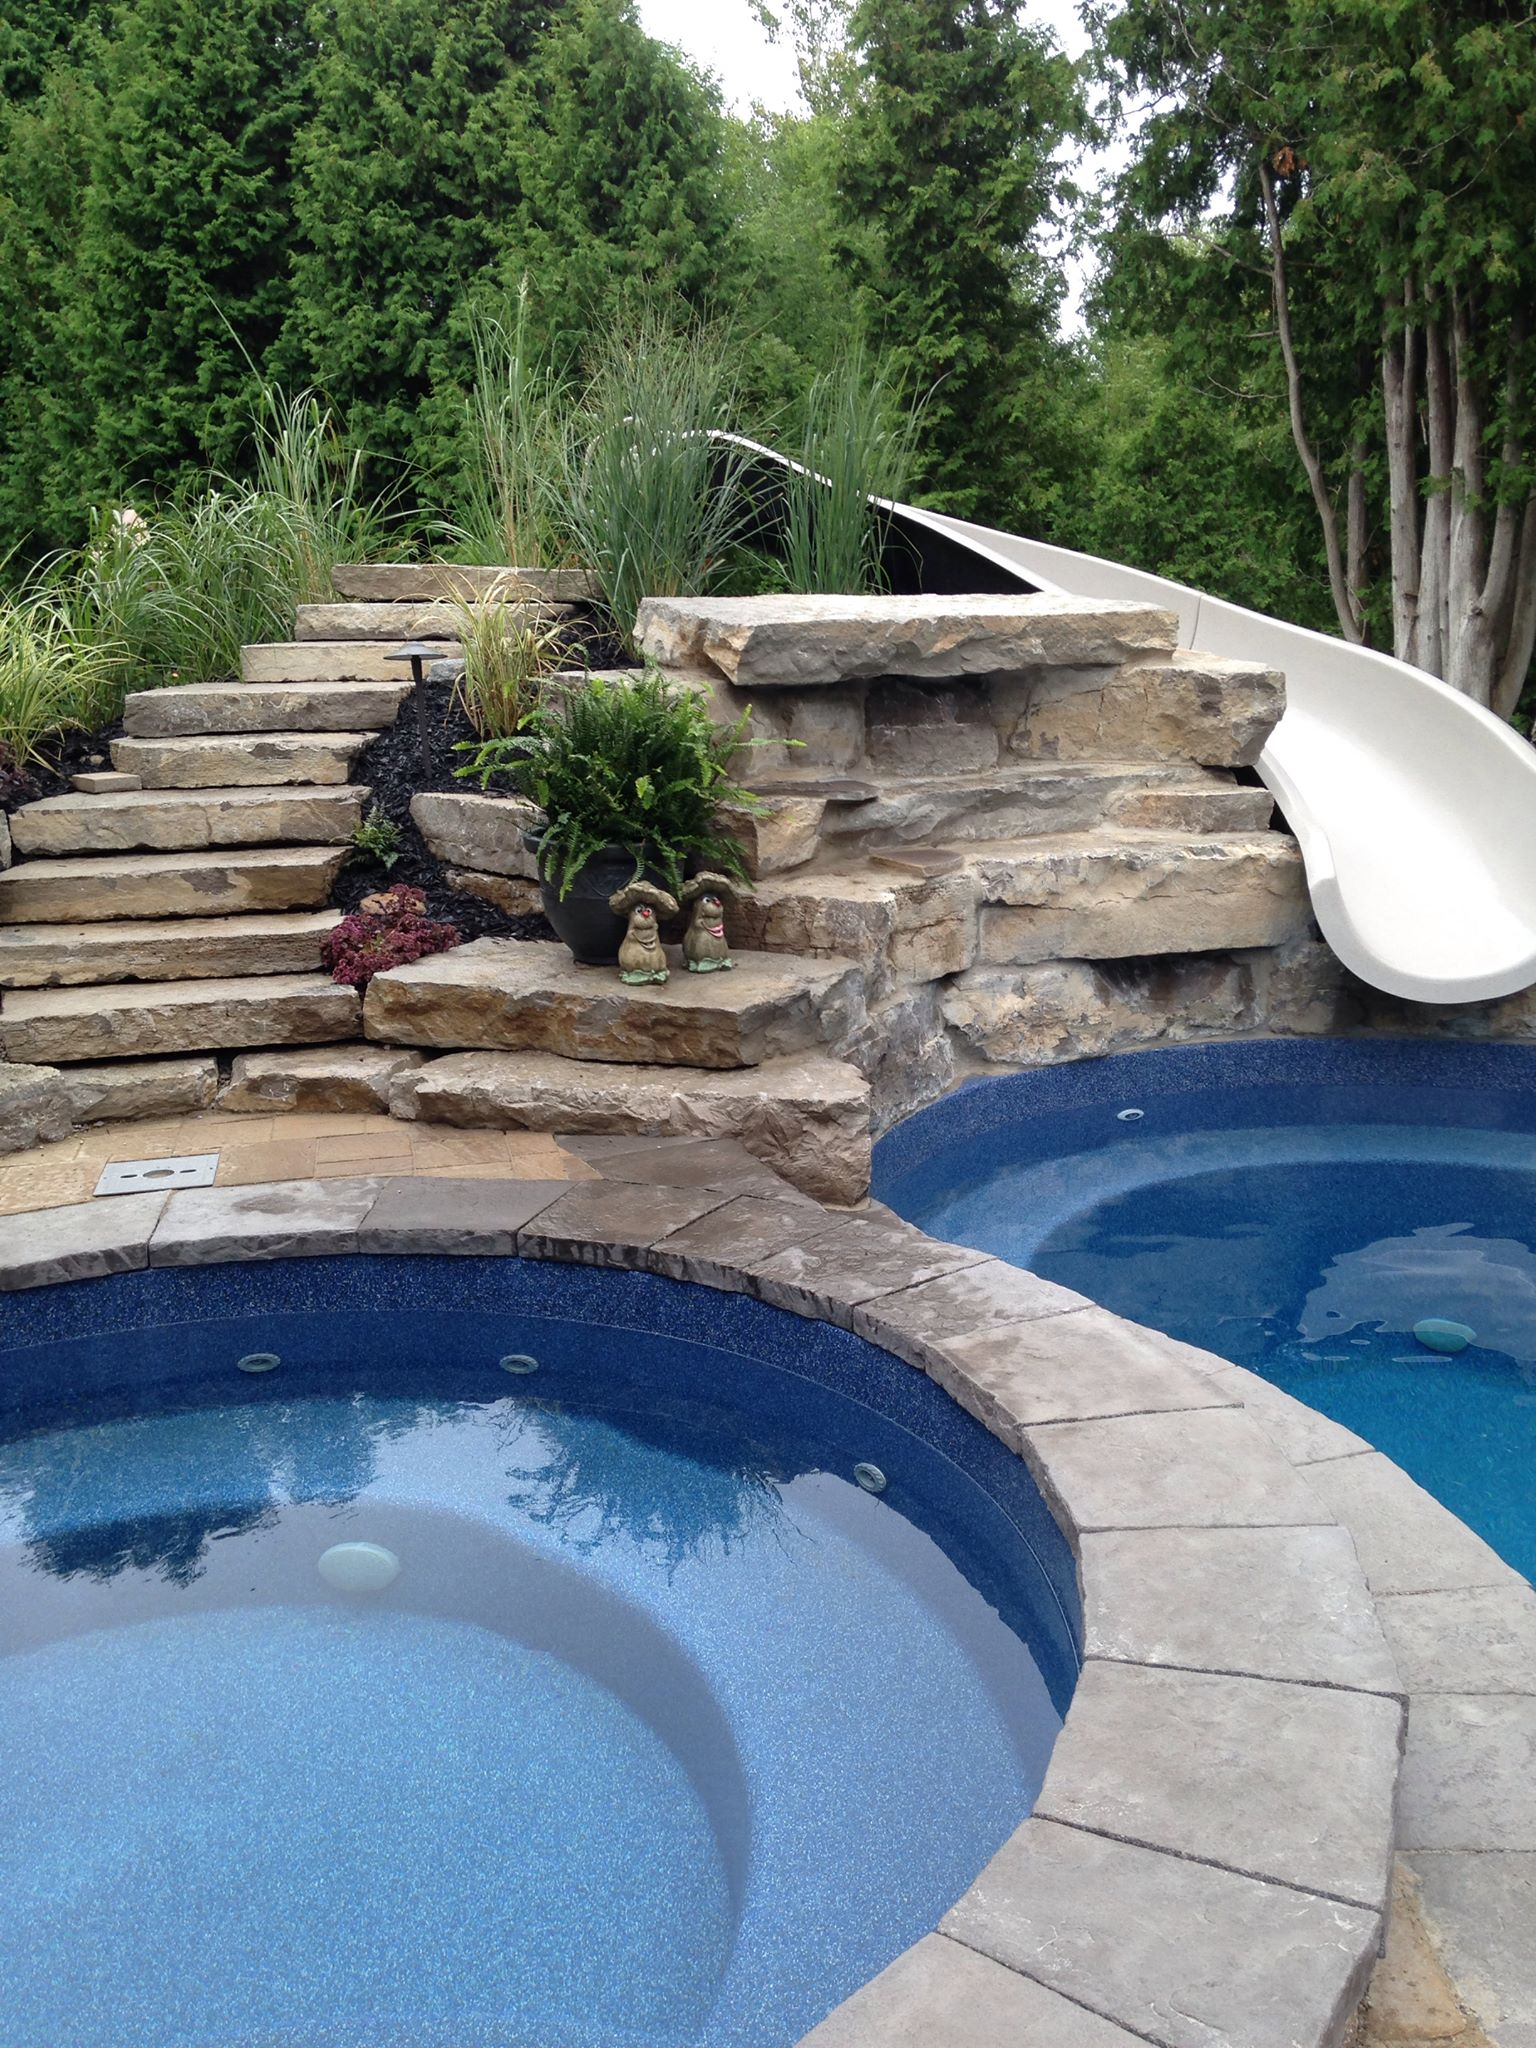 Fiberglass pool with a slide in Barrie, Ontario